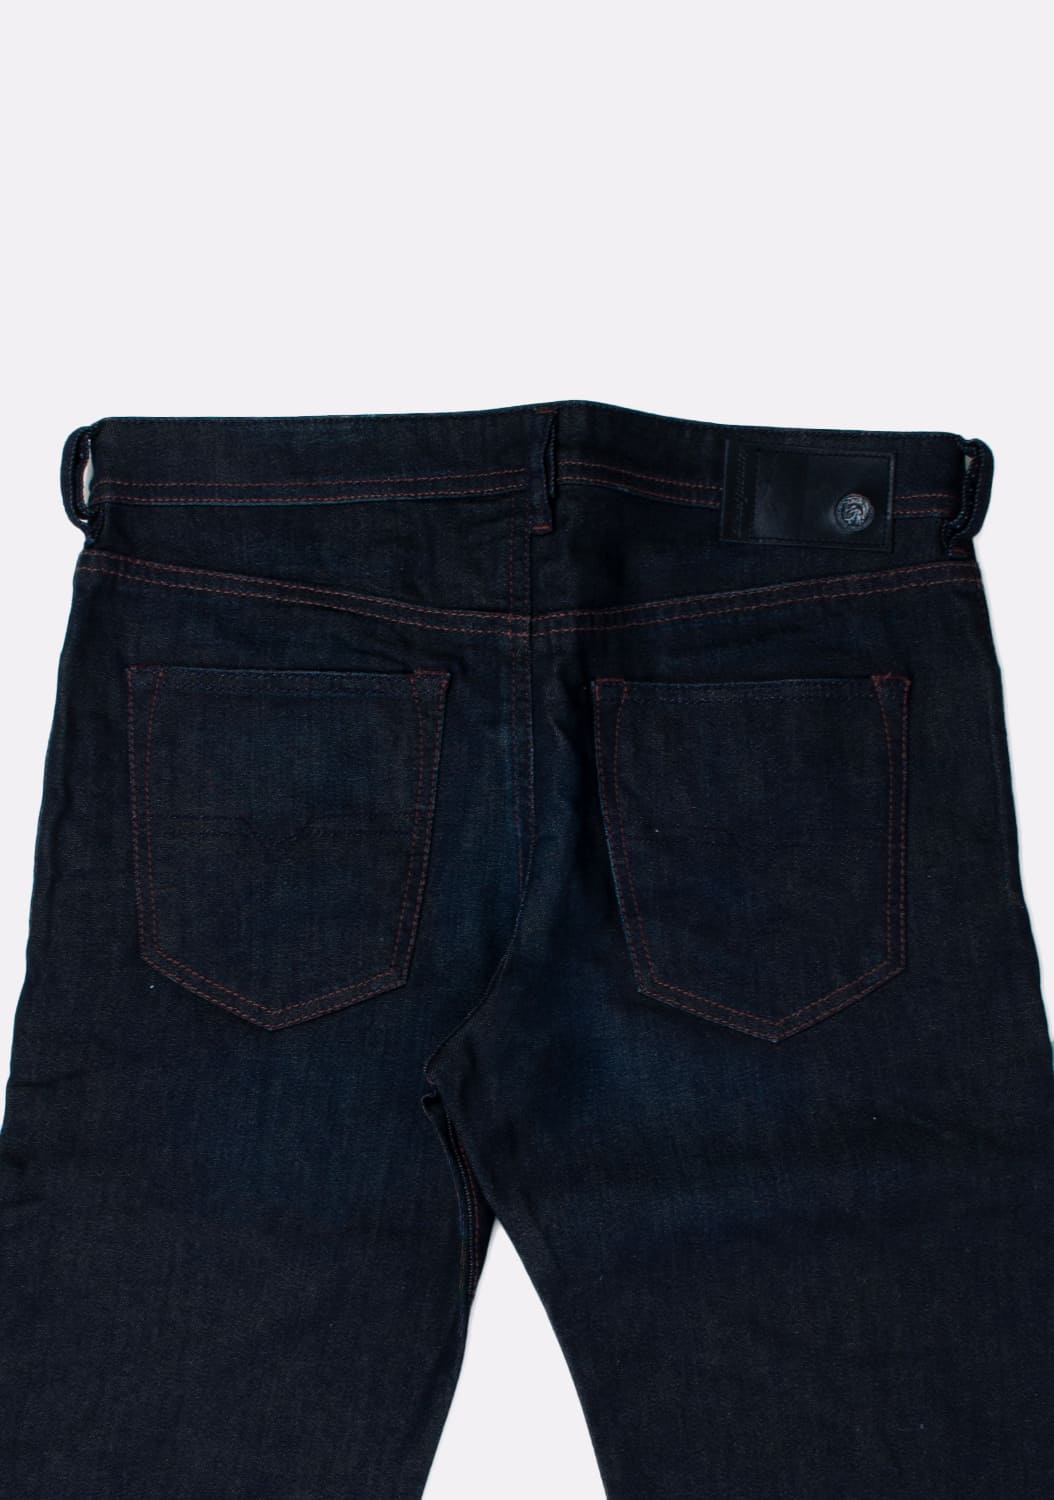 Diesel-Buster-0845G-Stretch-Regular-Slim-Tapered-melyni-dzinsai-dydis-33-34 (5)